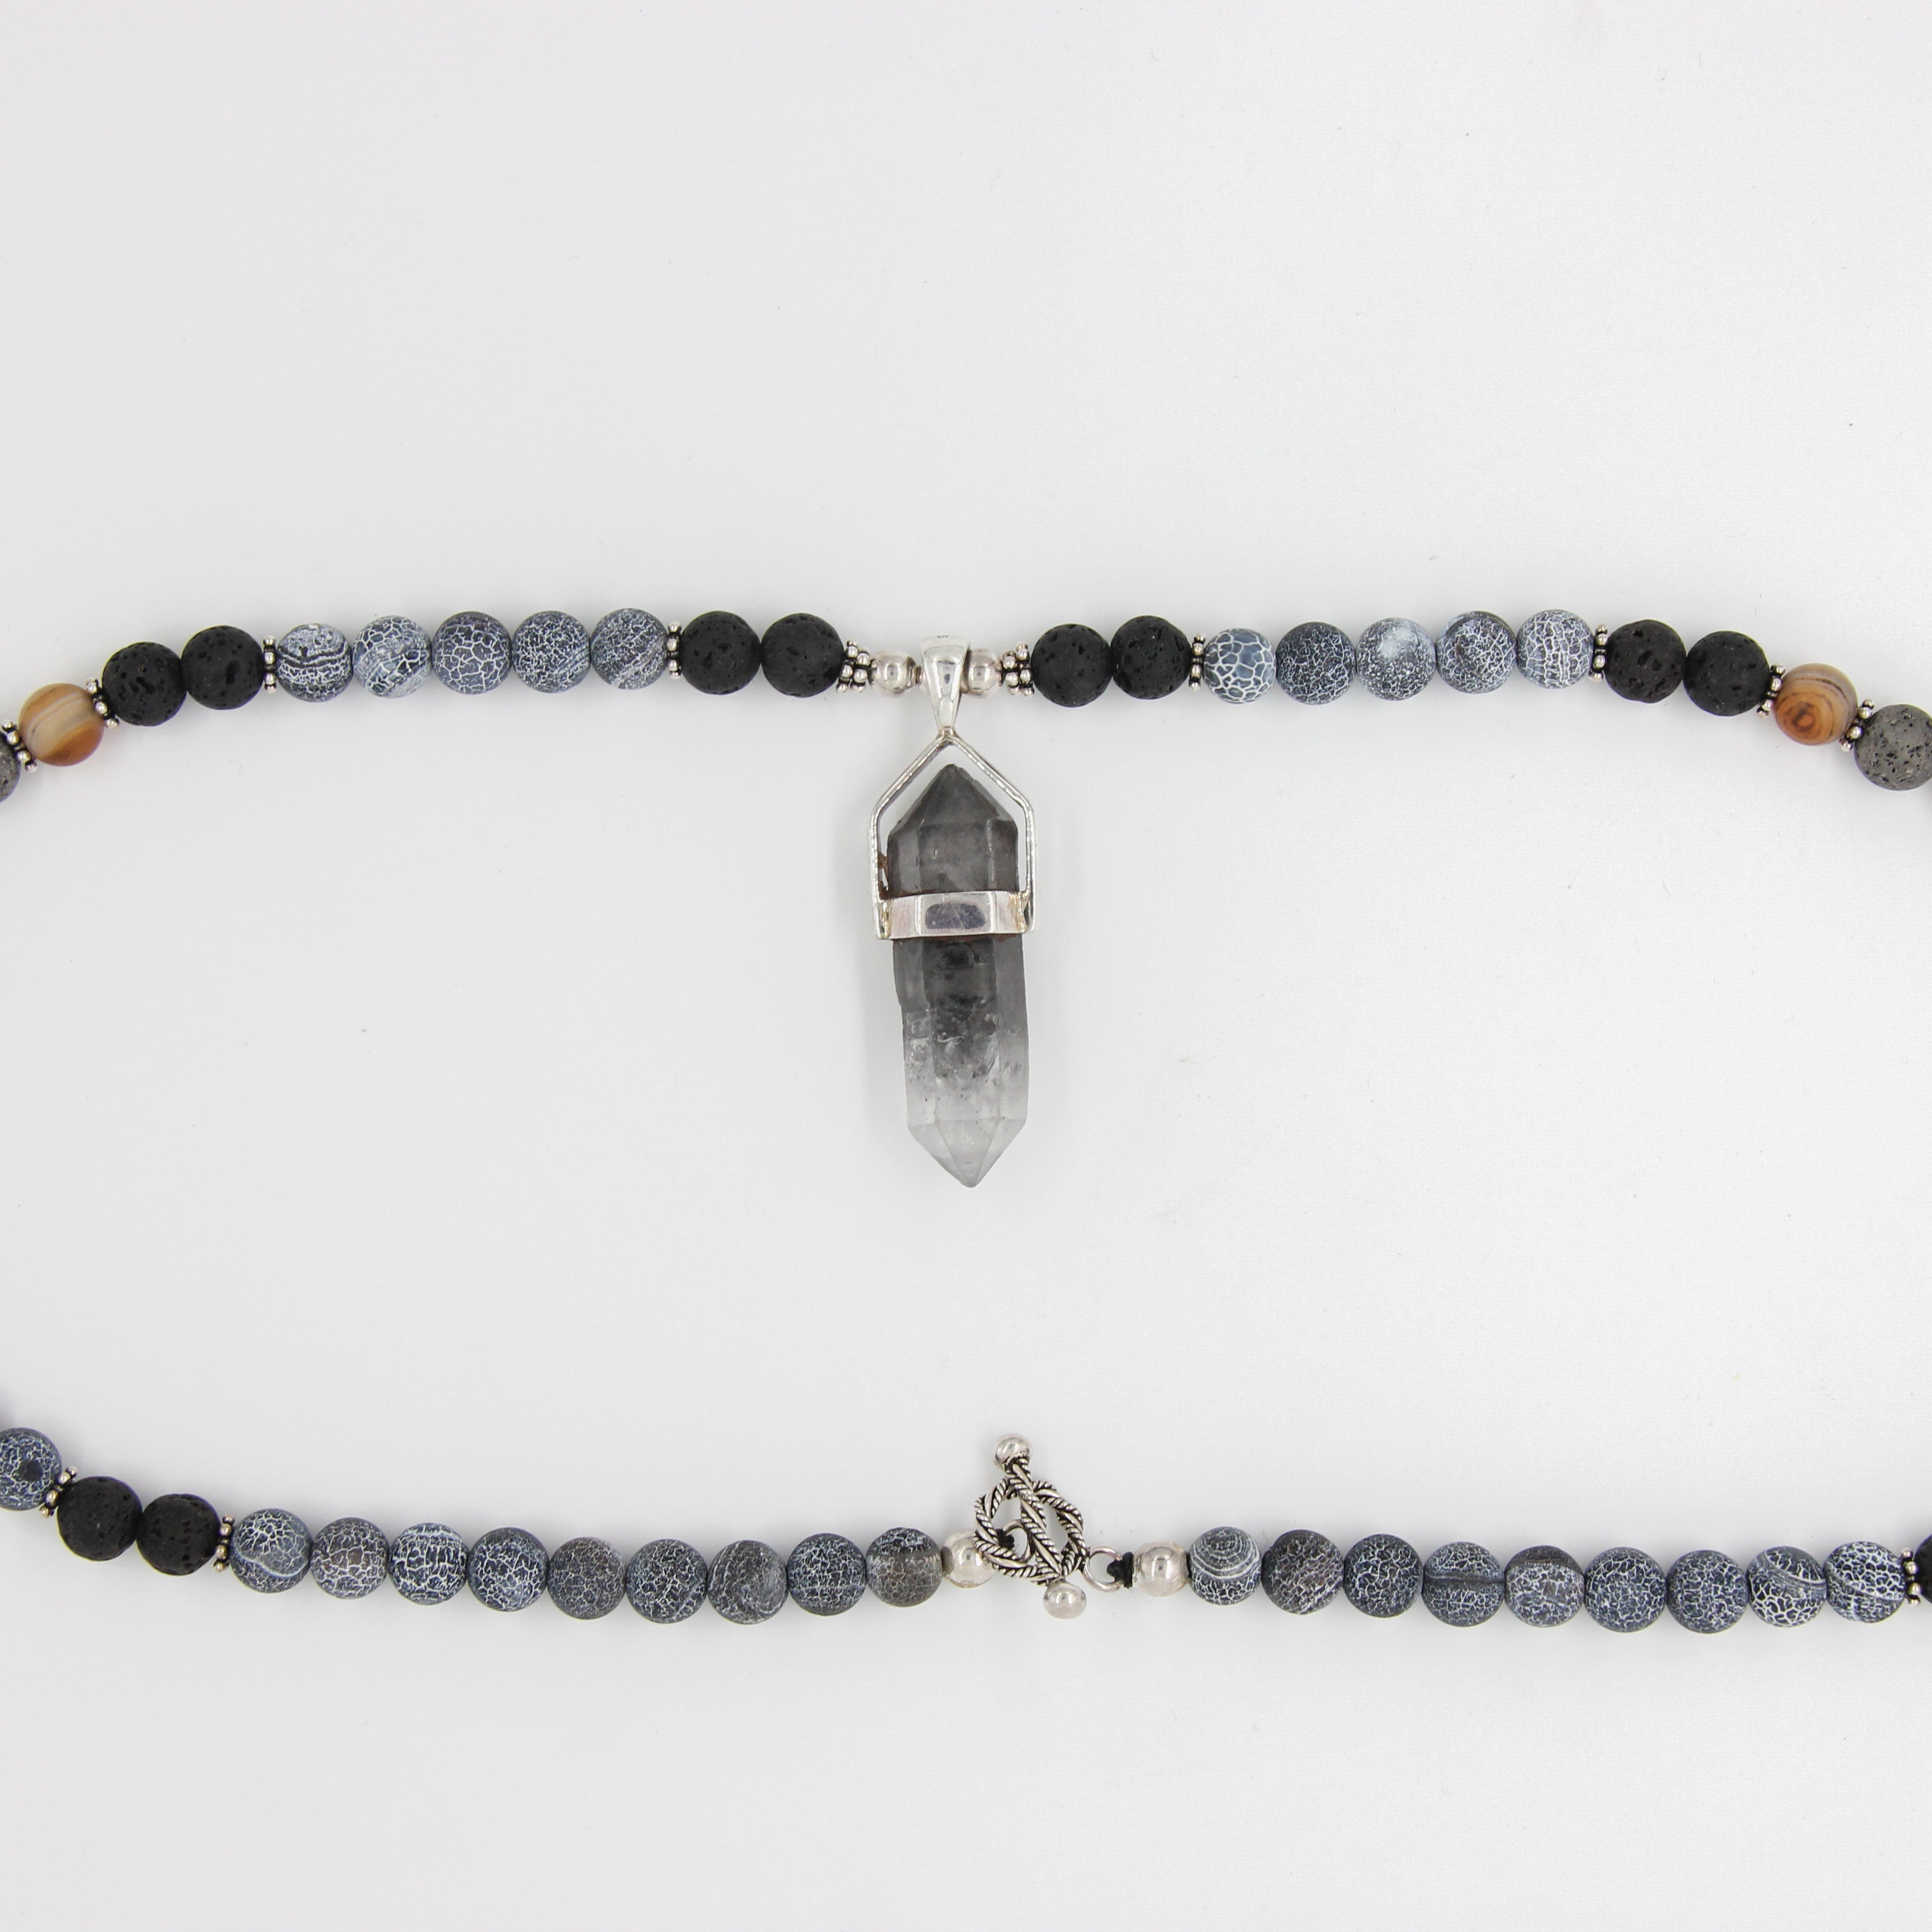 Agate Beads Necklace with Herkimar Crystal, Lava and Silver Beads